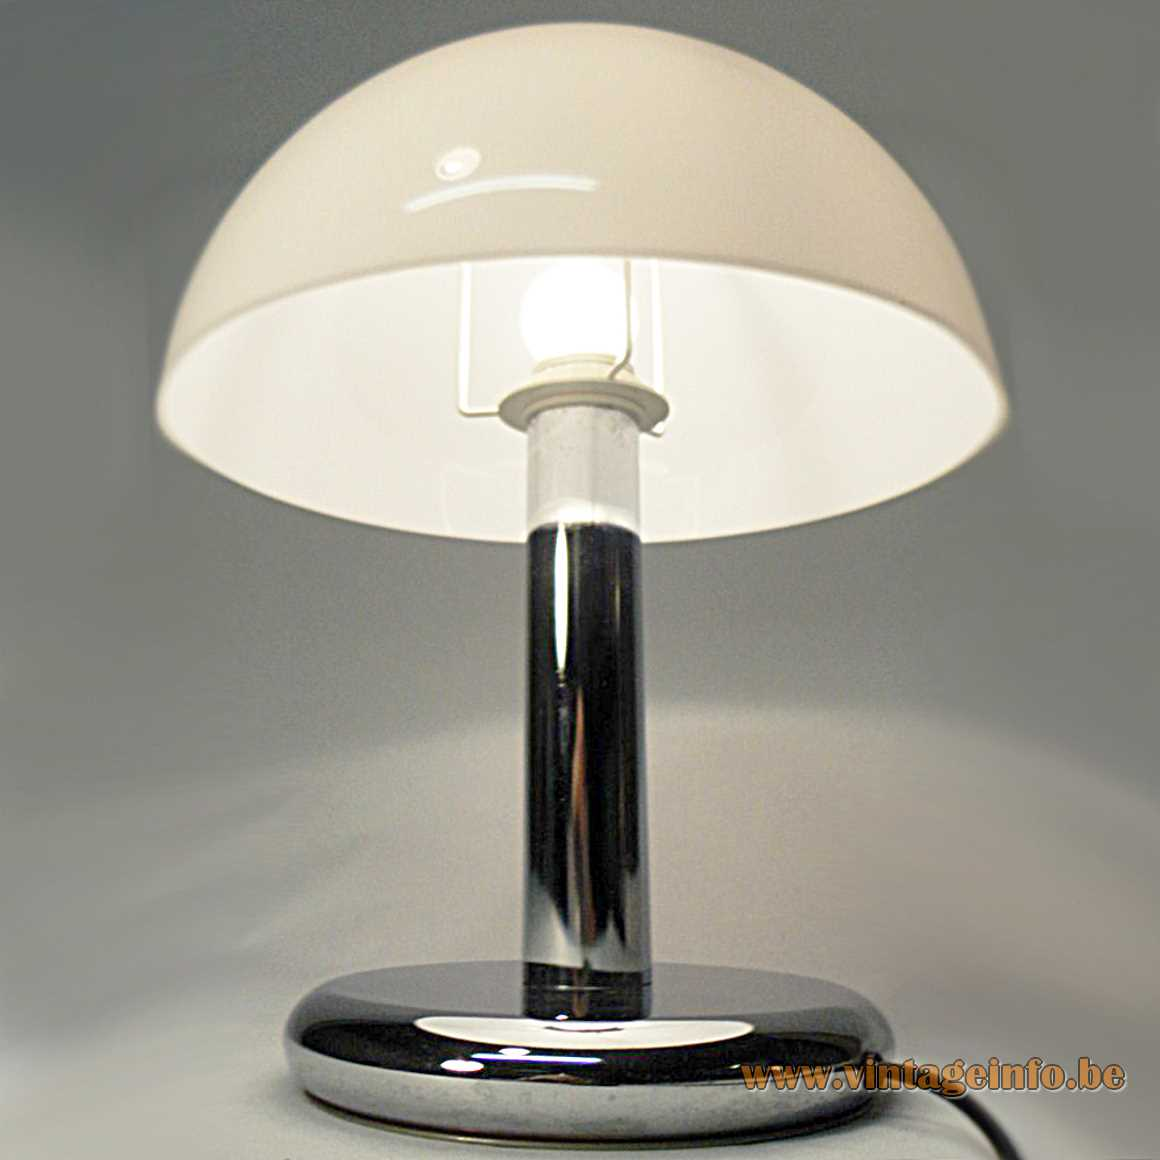 Acrylic & chrome mushroom table lamp round base & rod white plastic lampshade Massive Belgium 1970s 1980s